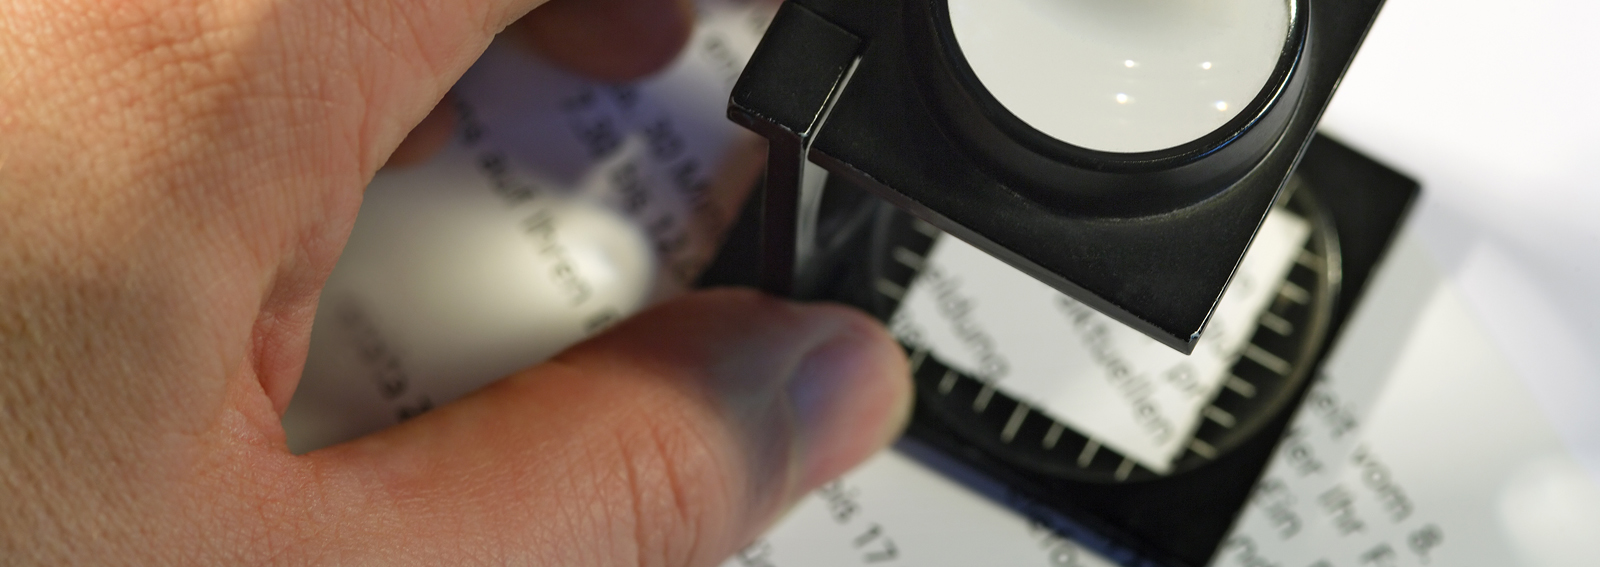 Shallow depth of field image of a printer using a loupe to check text